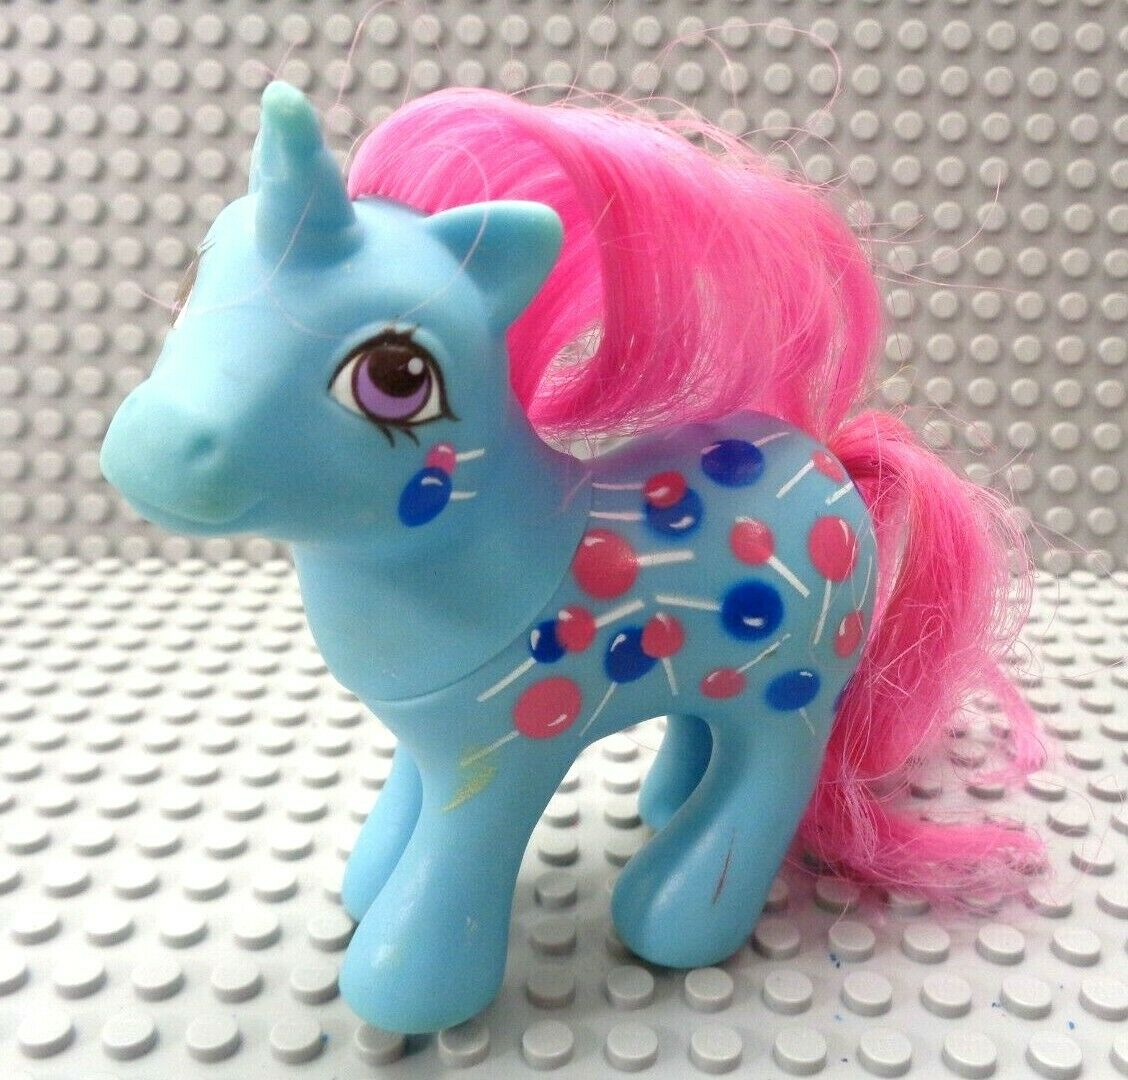 Vintage My little pony G1 G1 G1 Baby Sweet tooth (Mail order) RARE Unicorn 68e